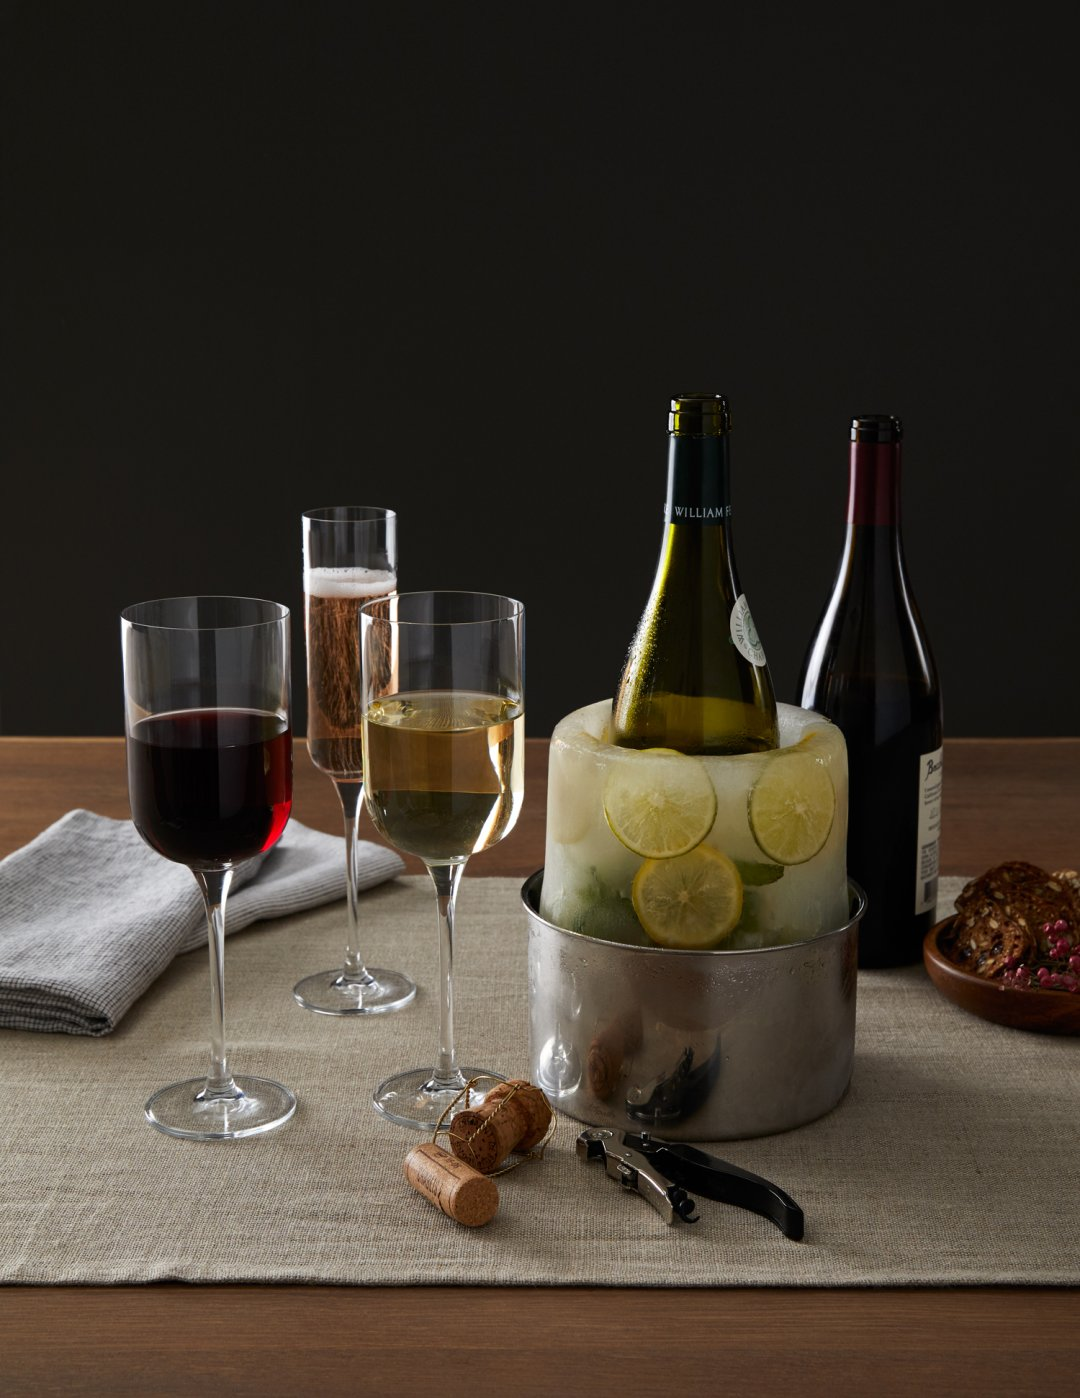 Glasses of red and white wine next to a wine bottle in an ice mold